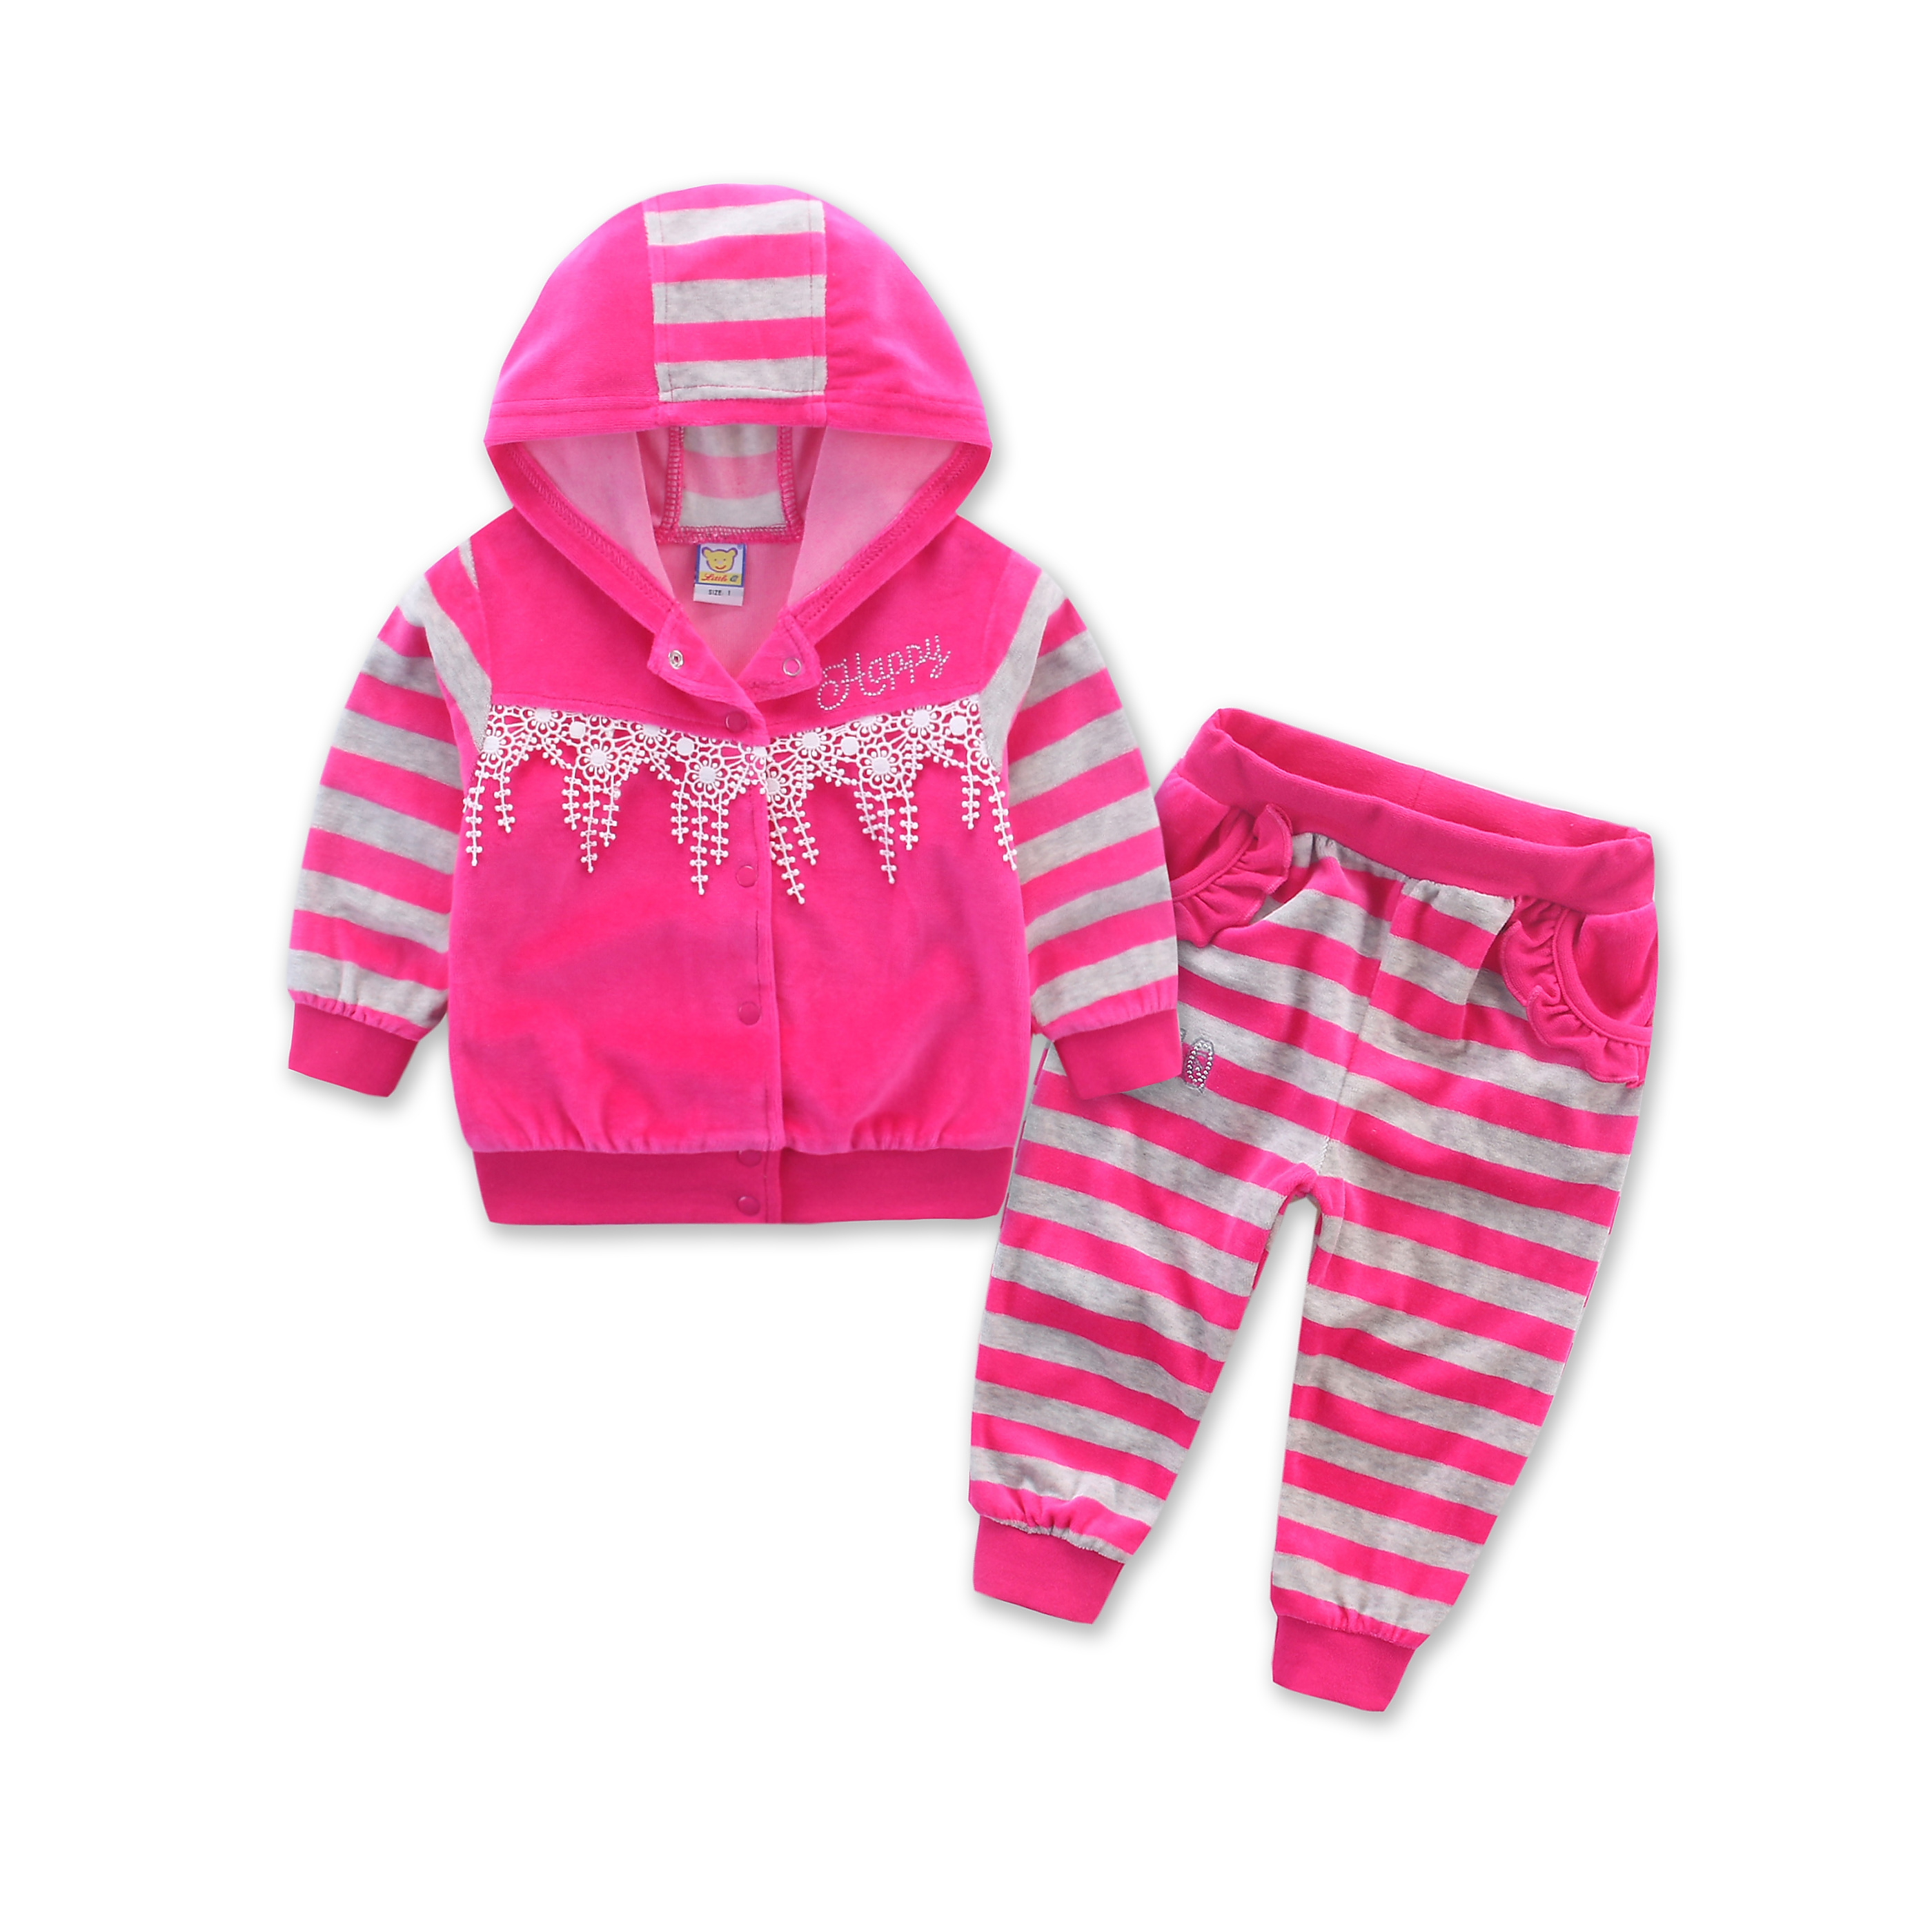 2017 New style spring autumn hoodie baby girl clothing set sequin lace long-sleeve velour sports jacket long trousers outfits baby set trendy bat kids clothing twinset long sleeve set hoodie